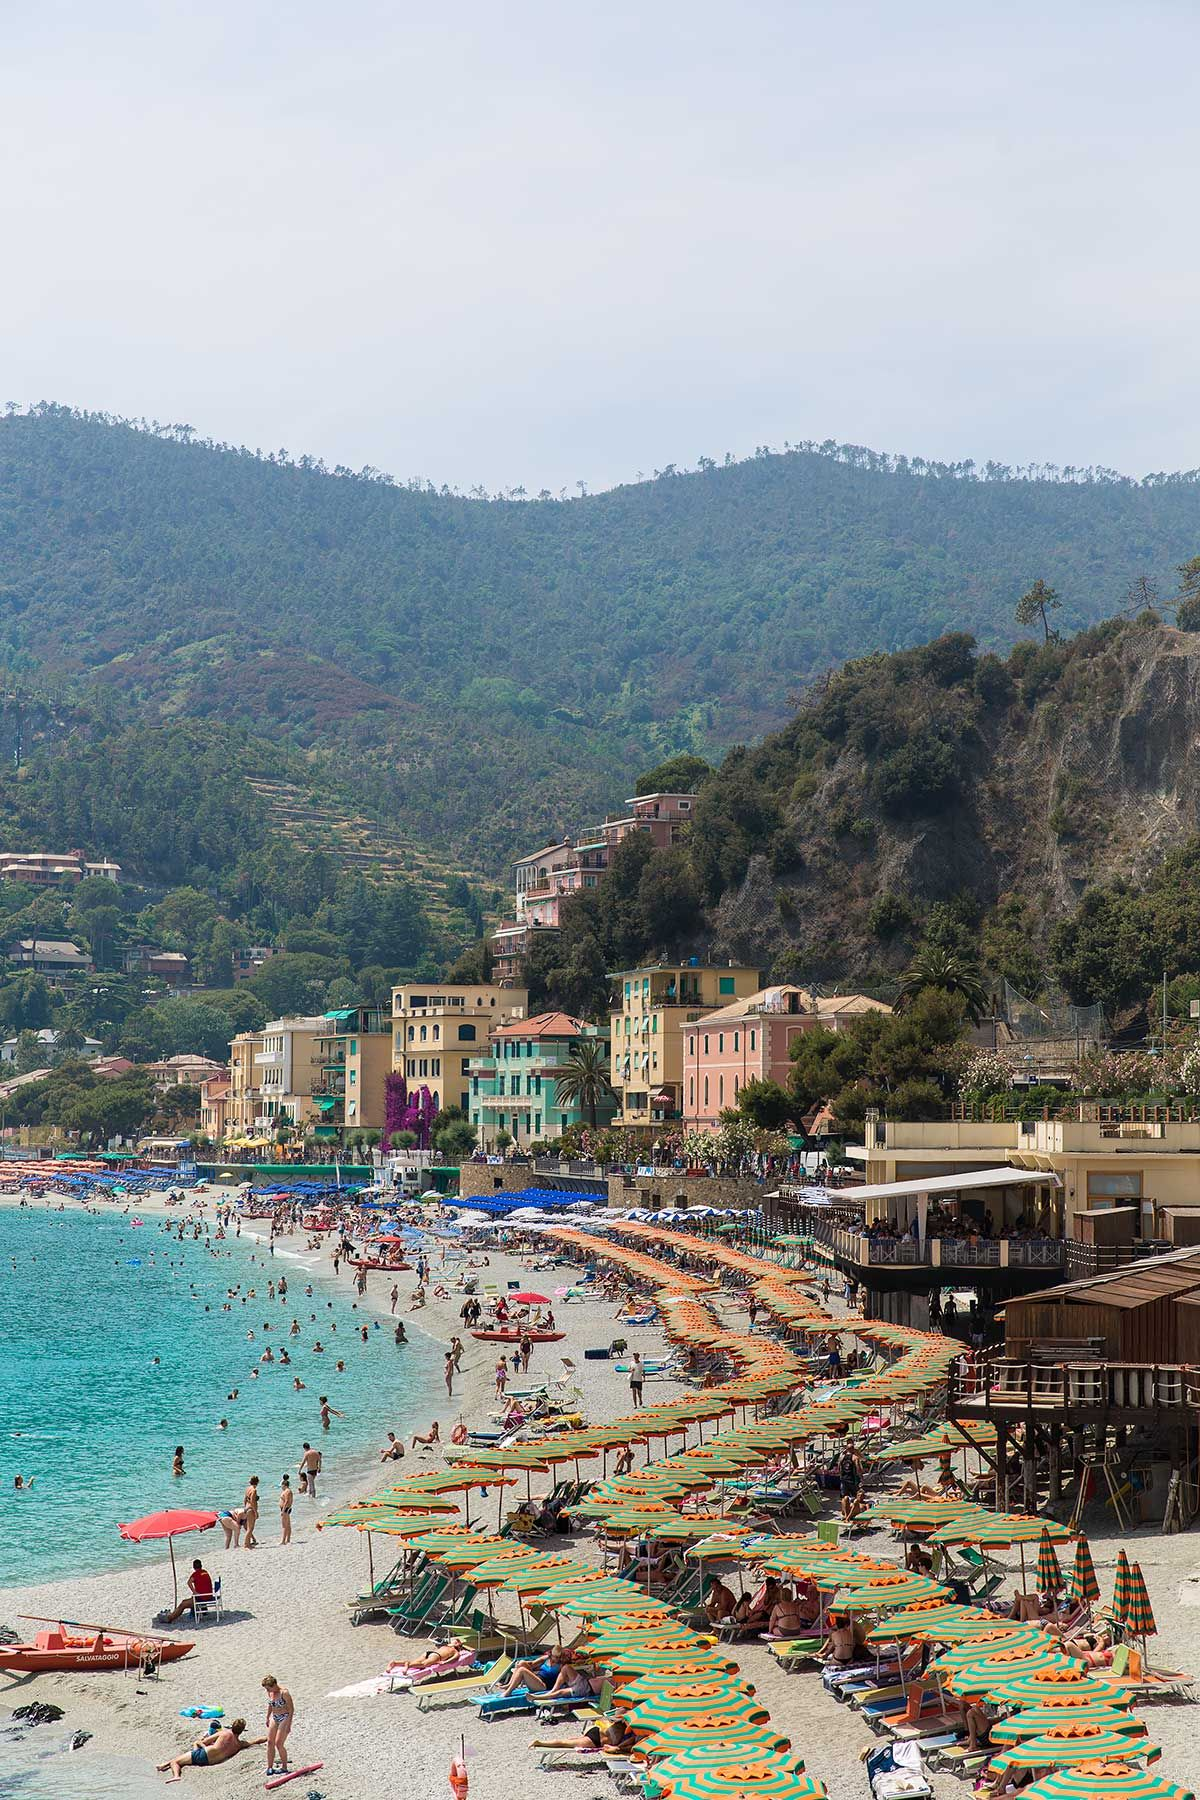 Hands Down This Is Where You Should Stay In Cinque Terre